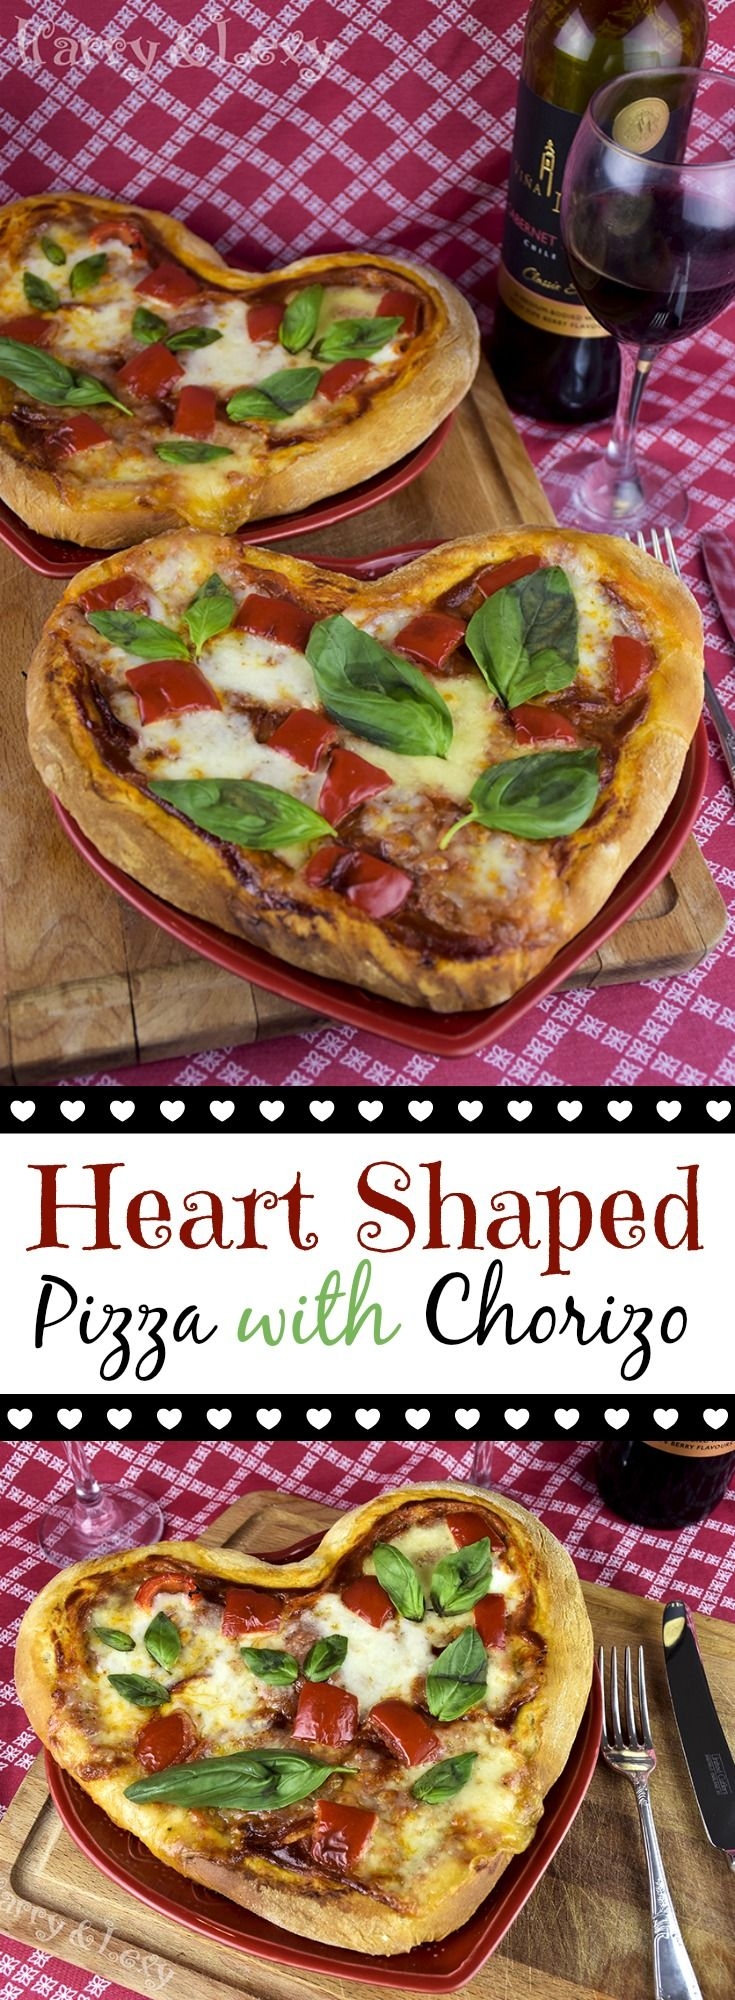 If you would like to surprise the loved one with a romantic dinner, there is nothing better than a homemade pizza. A heart shaped pizza with chorizo I mean.